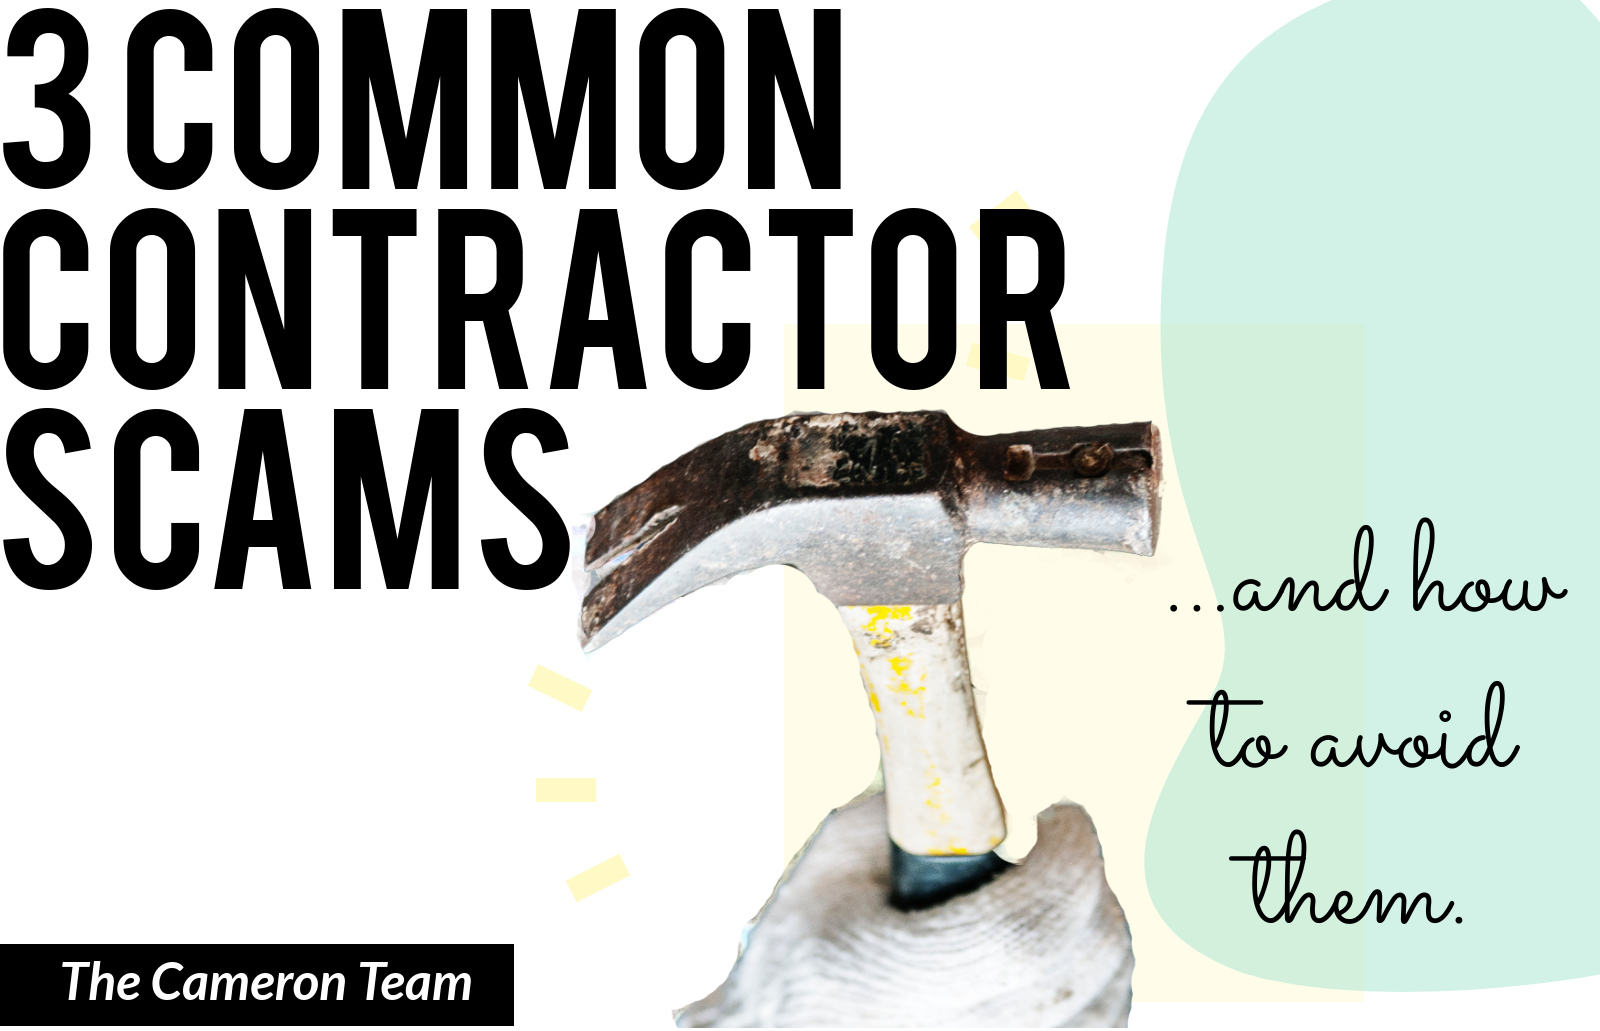 3 Common Contractor Scams and How to Avoid Them - The Cameron Team - Preview